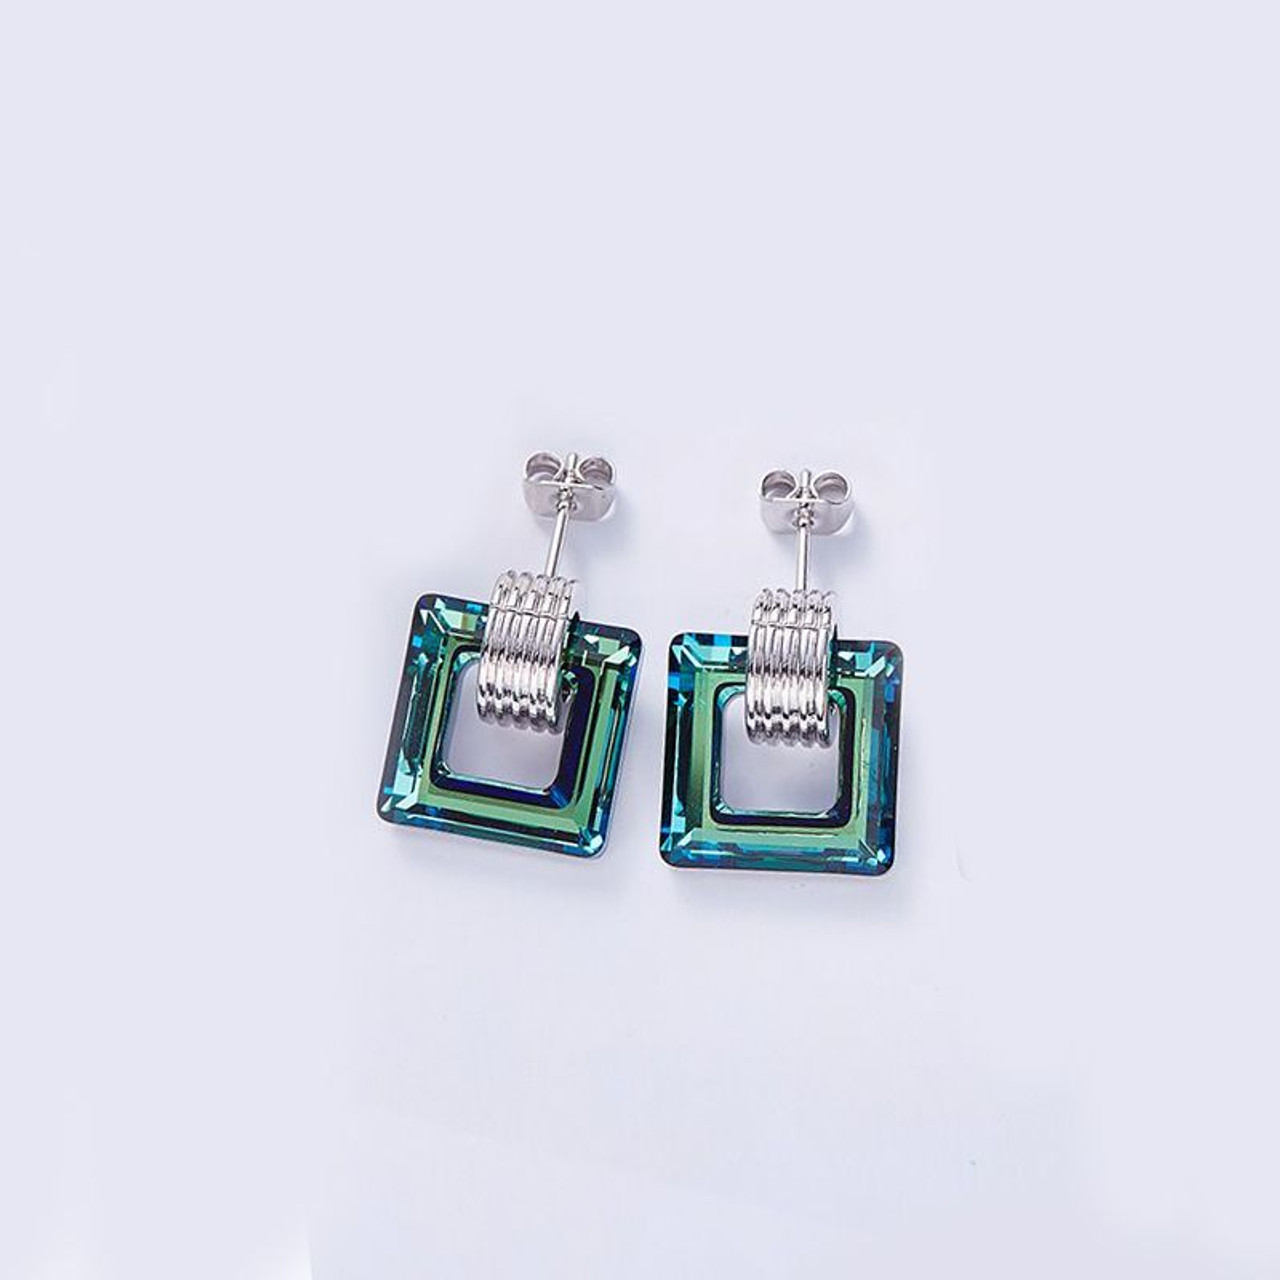 Aqua Water Square Stud Earrings Made with Swarovski Crystals